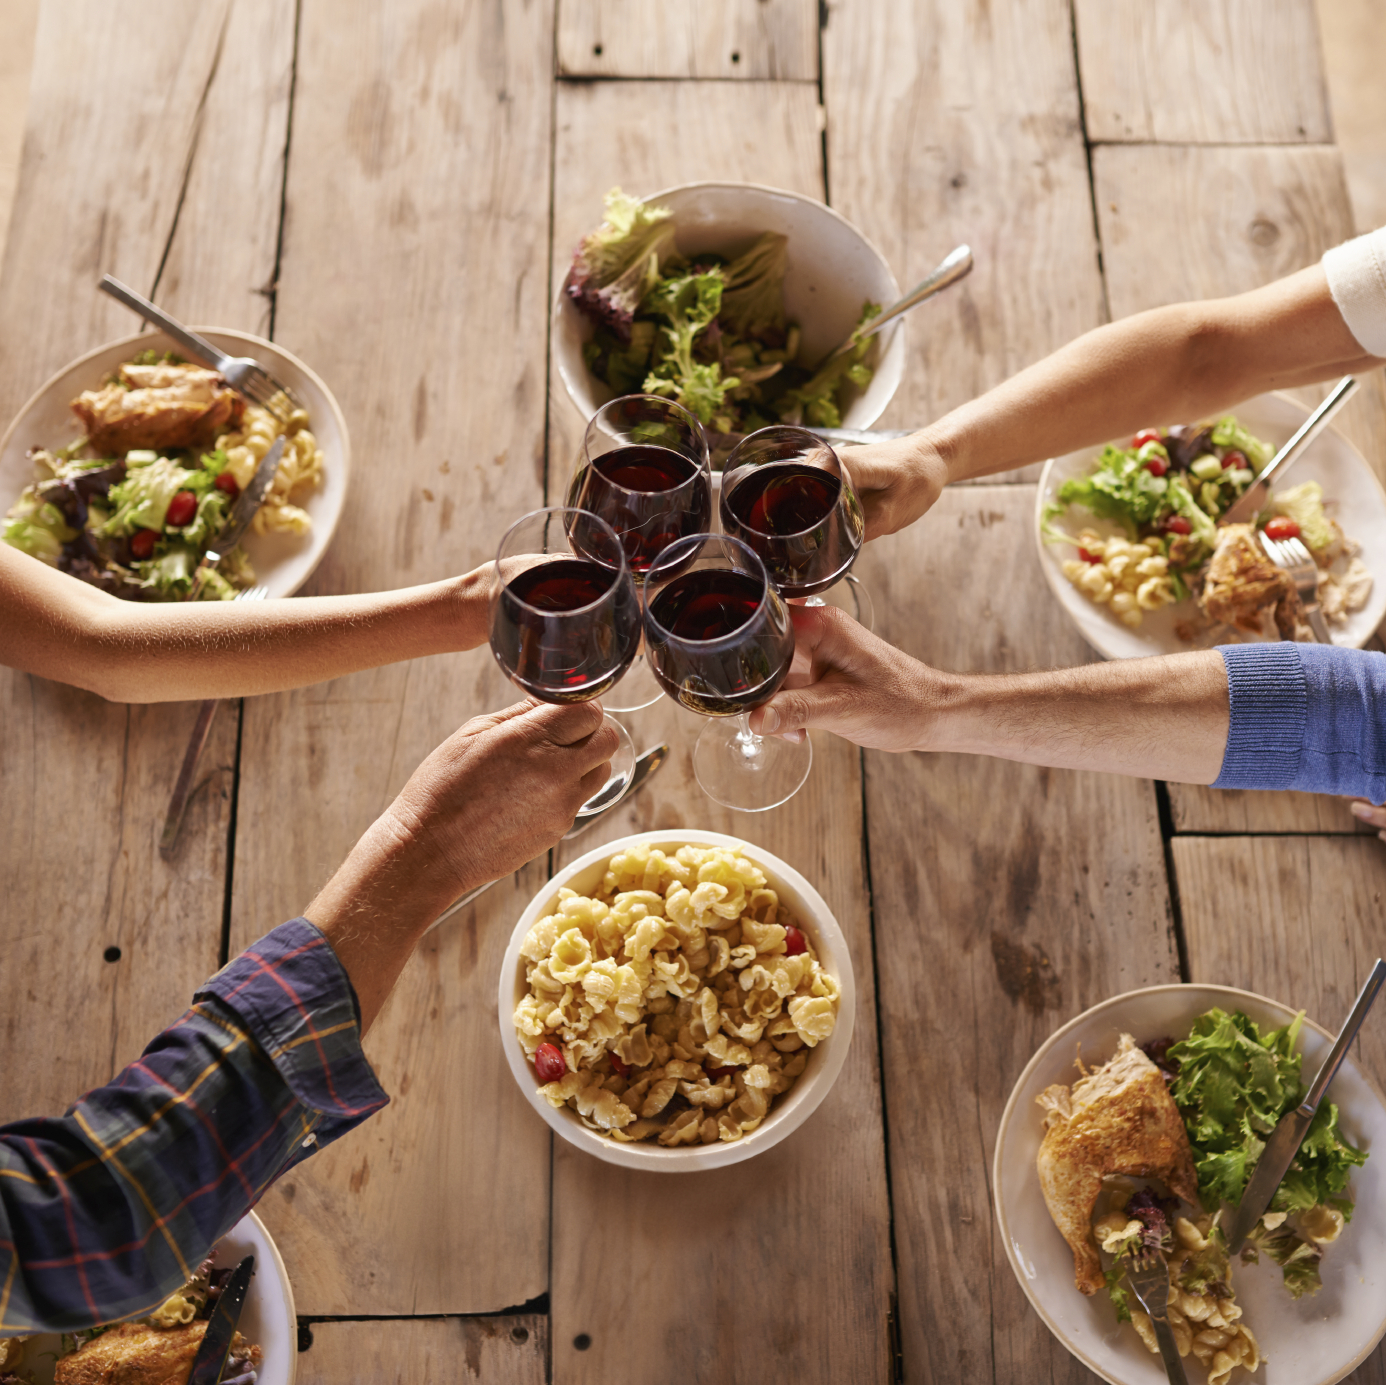 Good news: wine is gluten-free image: peopleimages